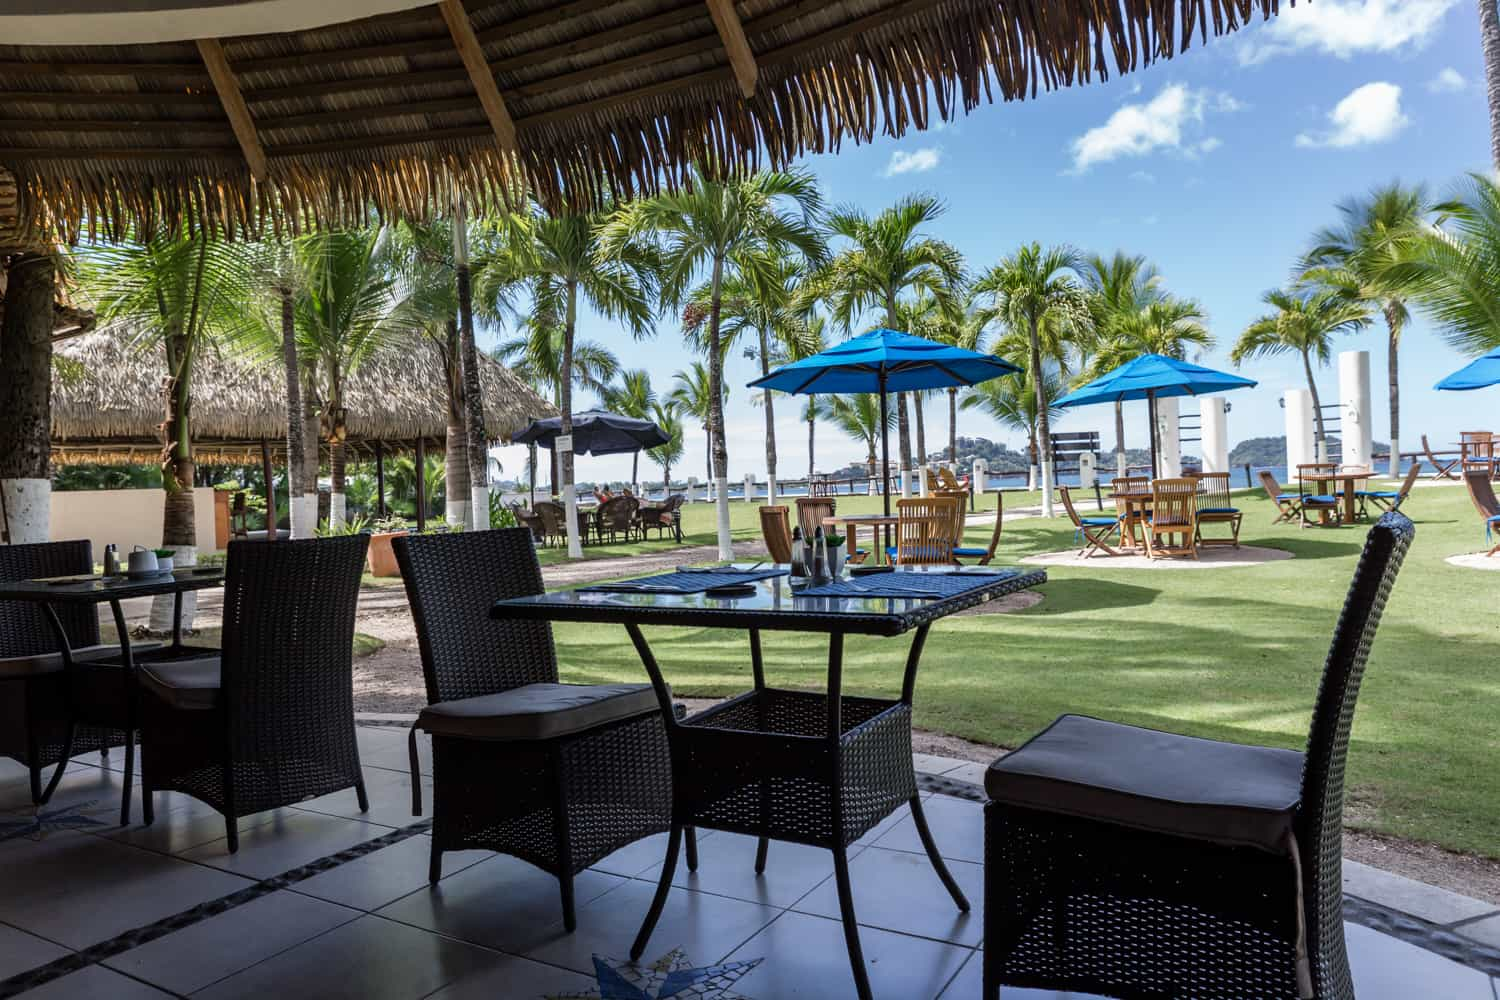 Enjoy great beach views at restaurant before and after your wedding day.